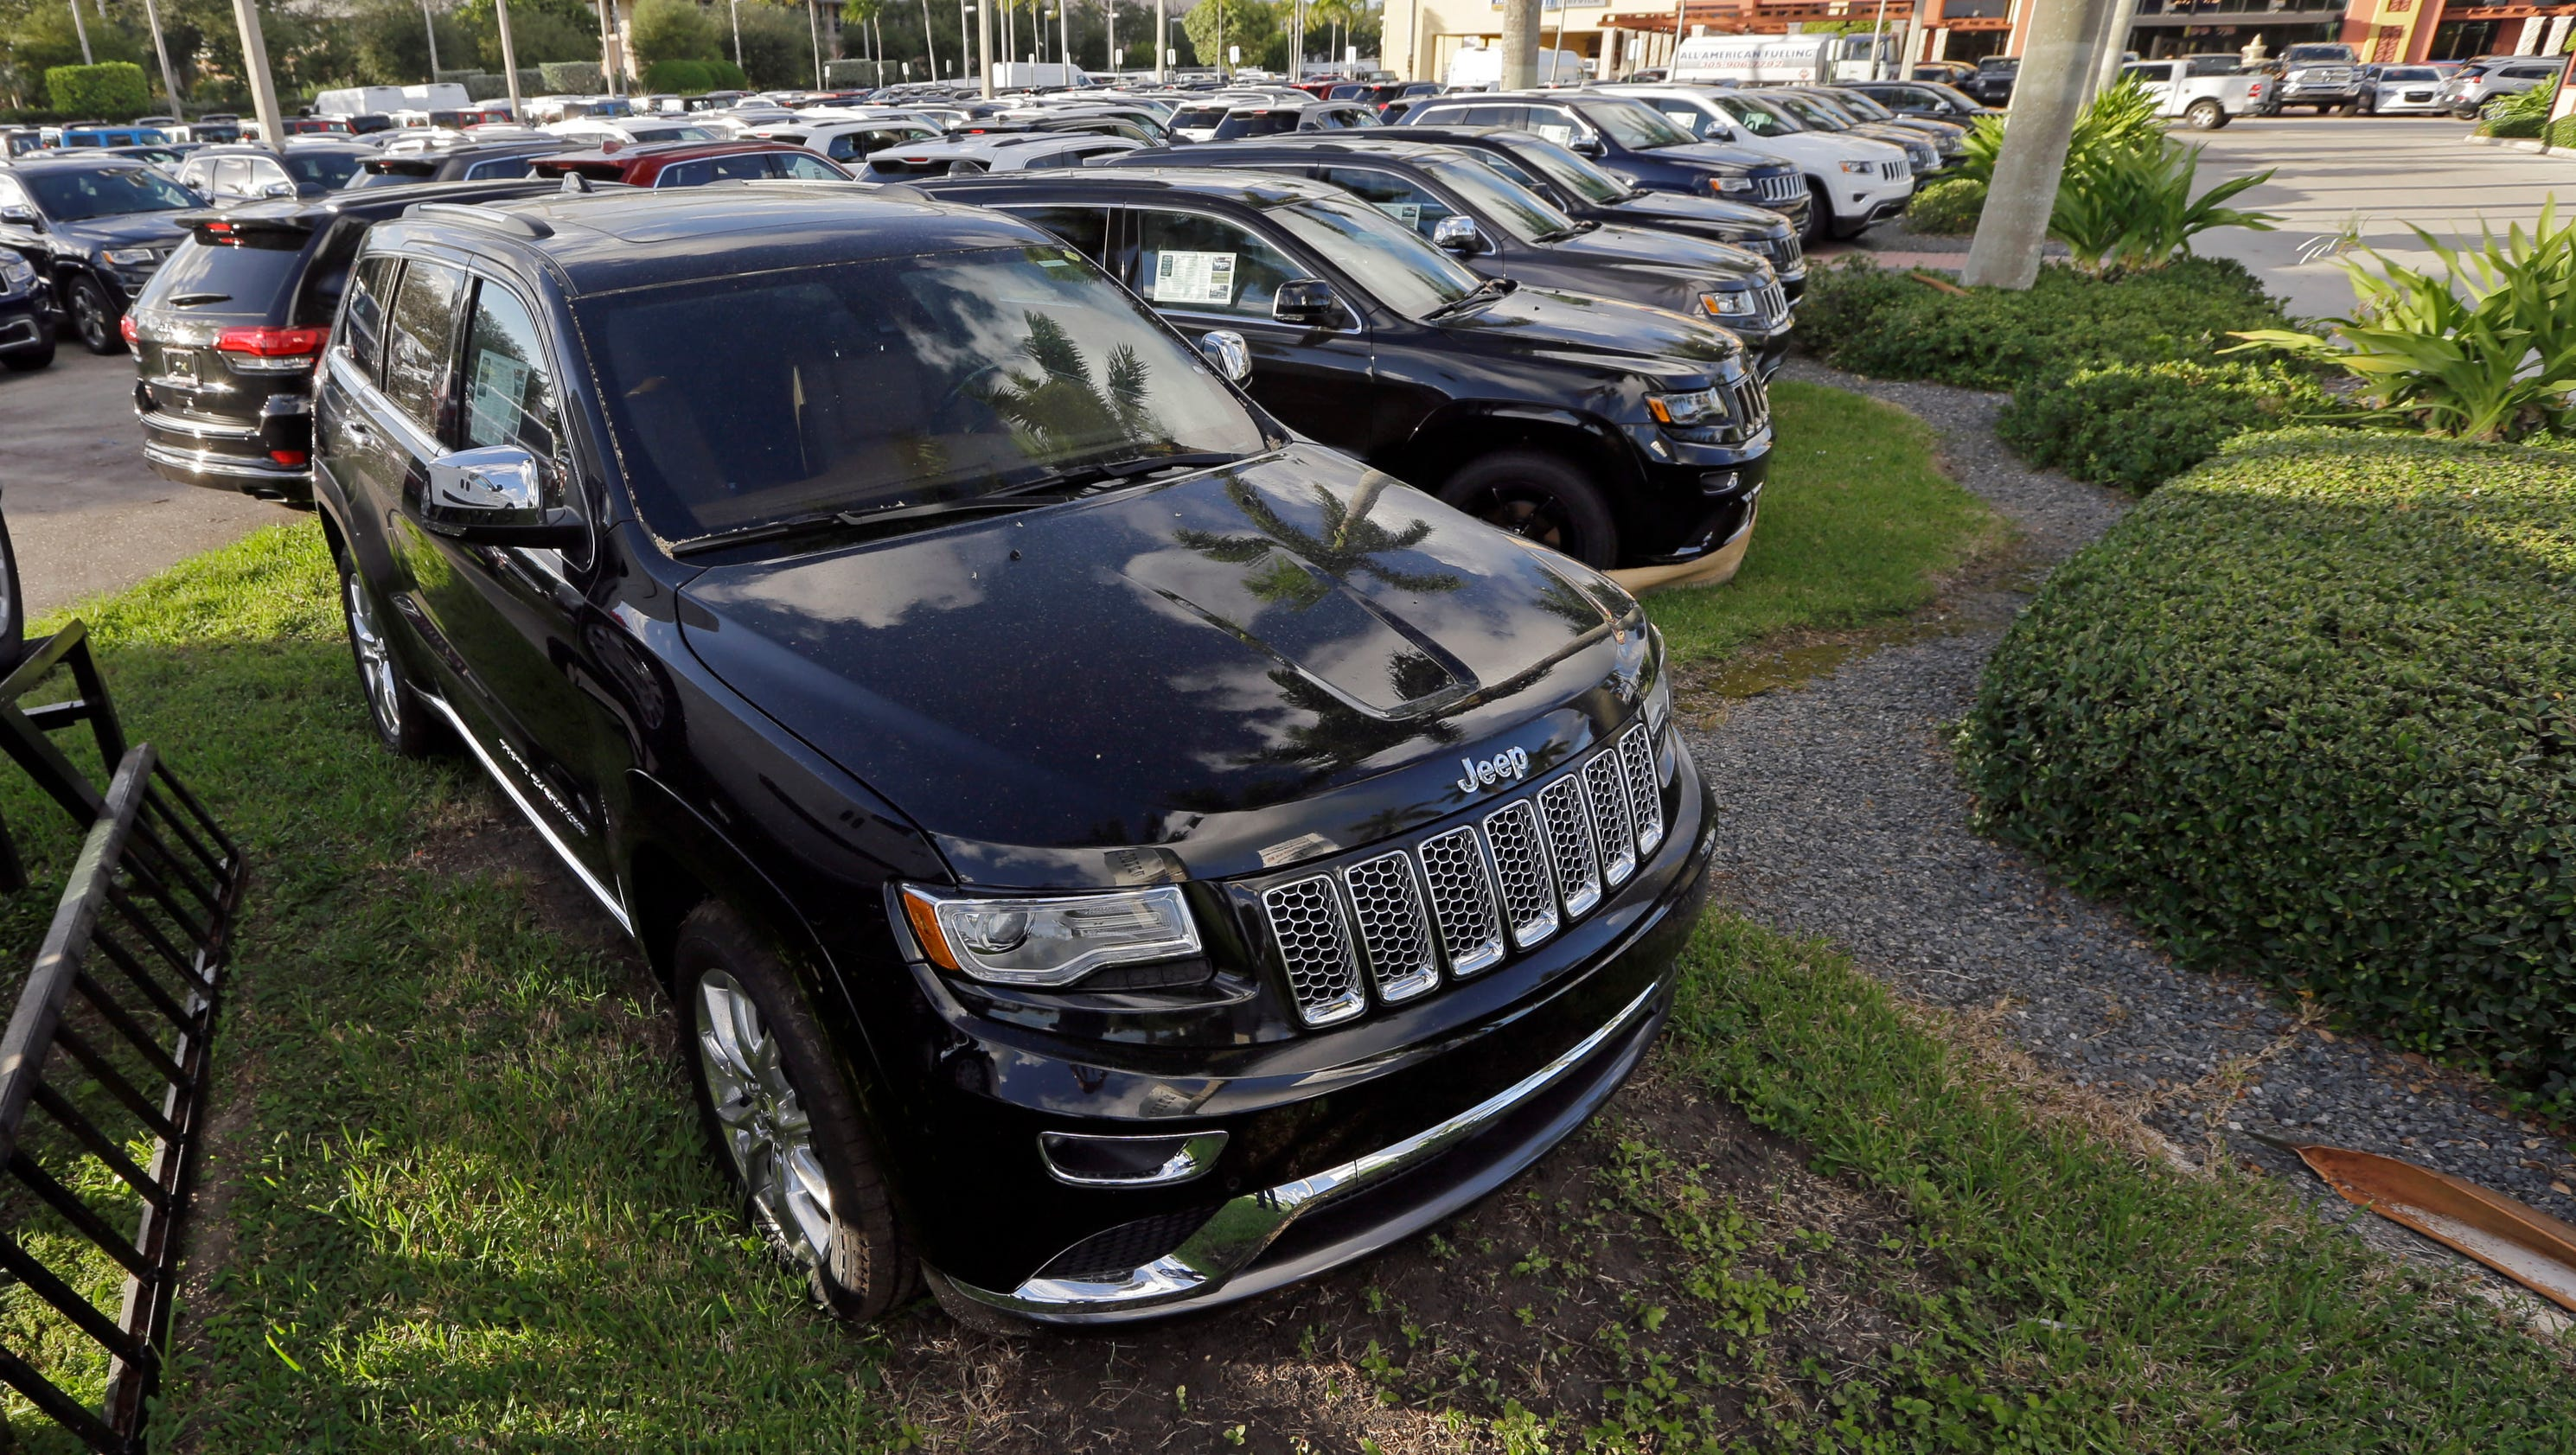 No recall sought as U.S. closes probe of Jeep automatic braking